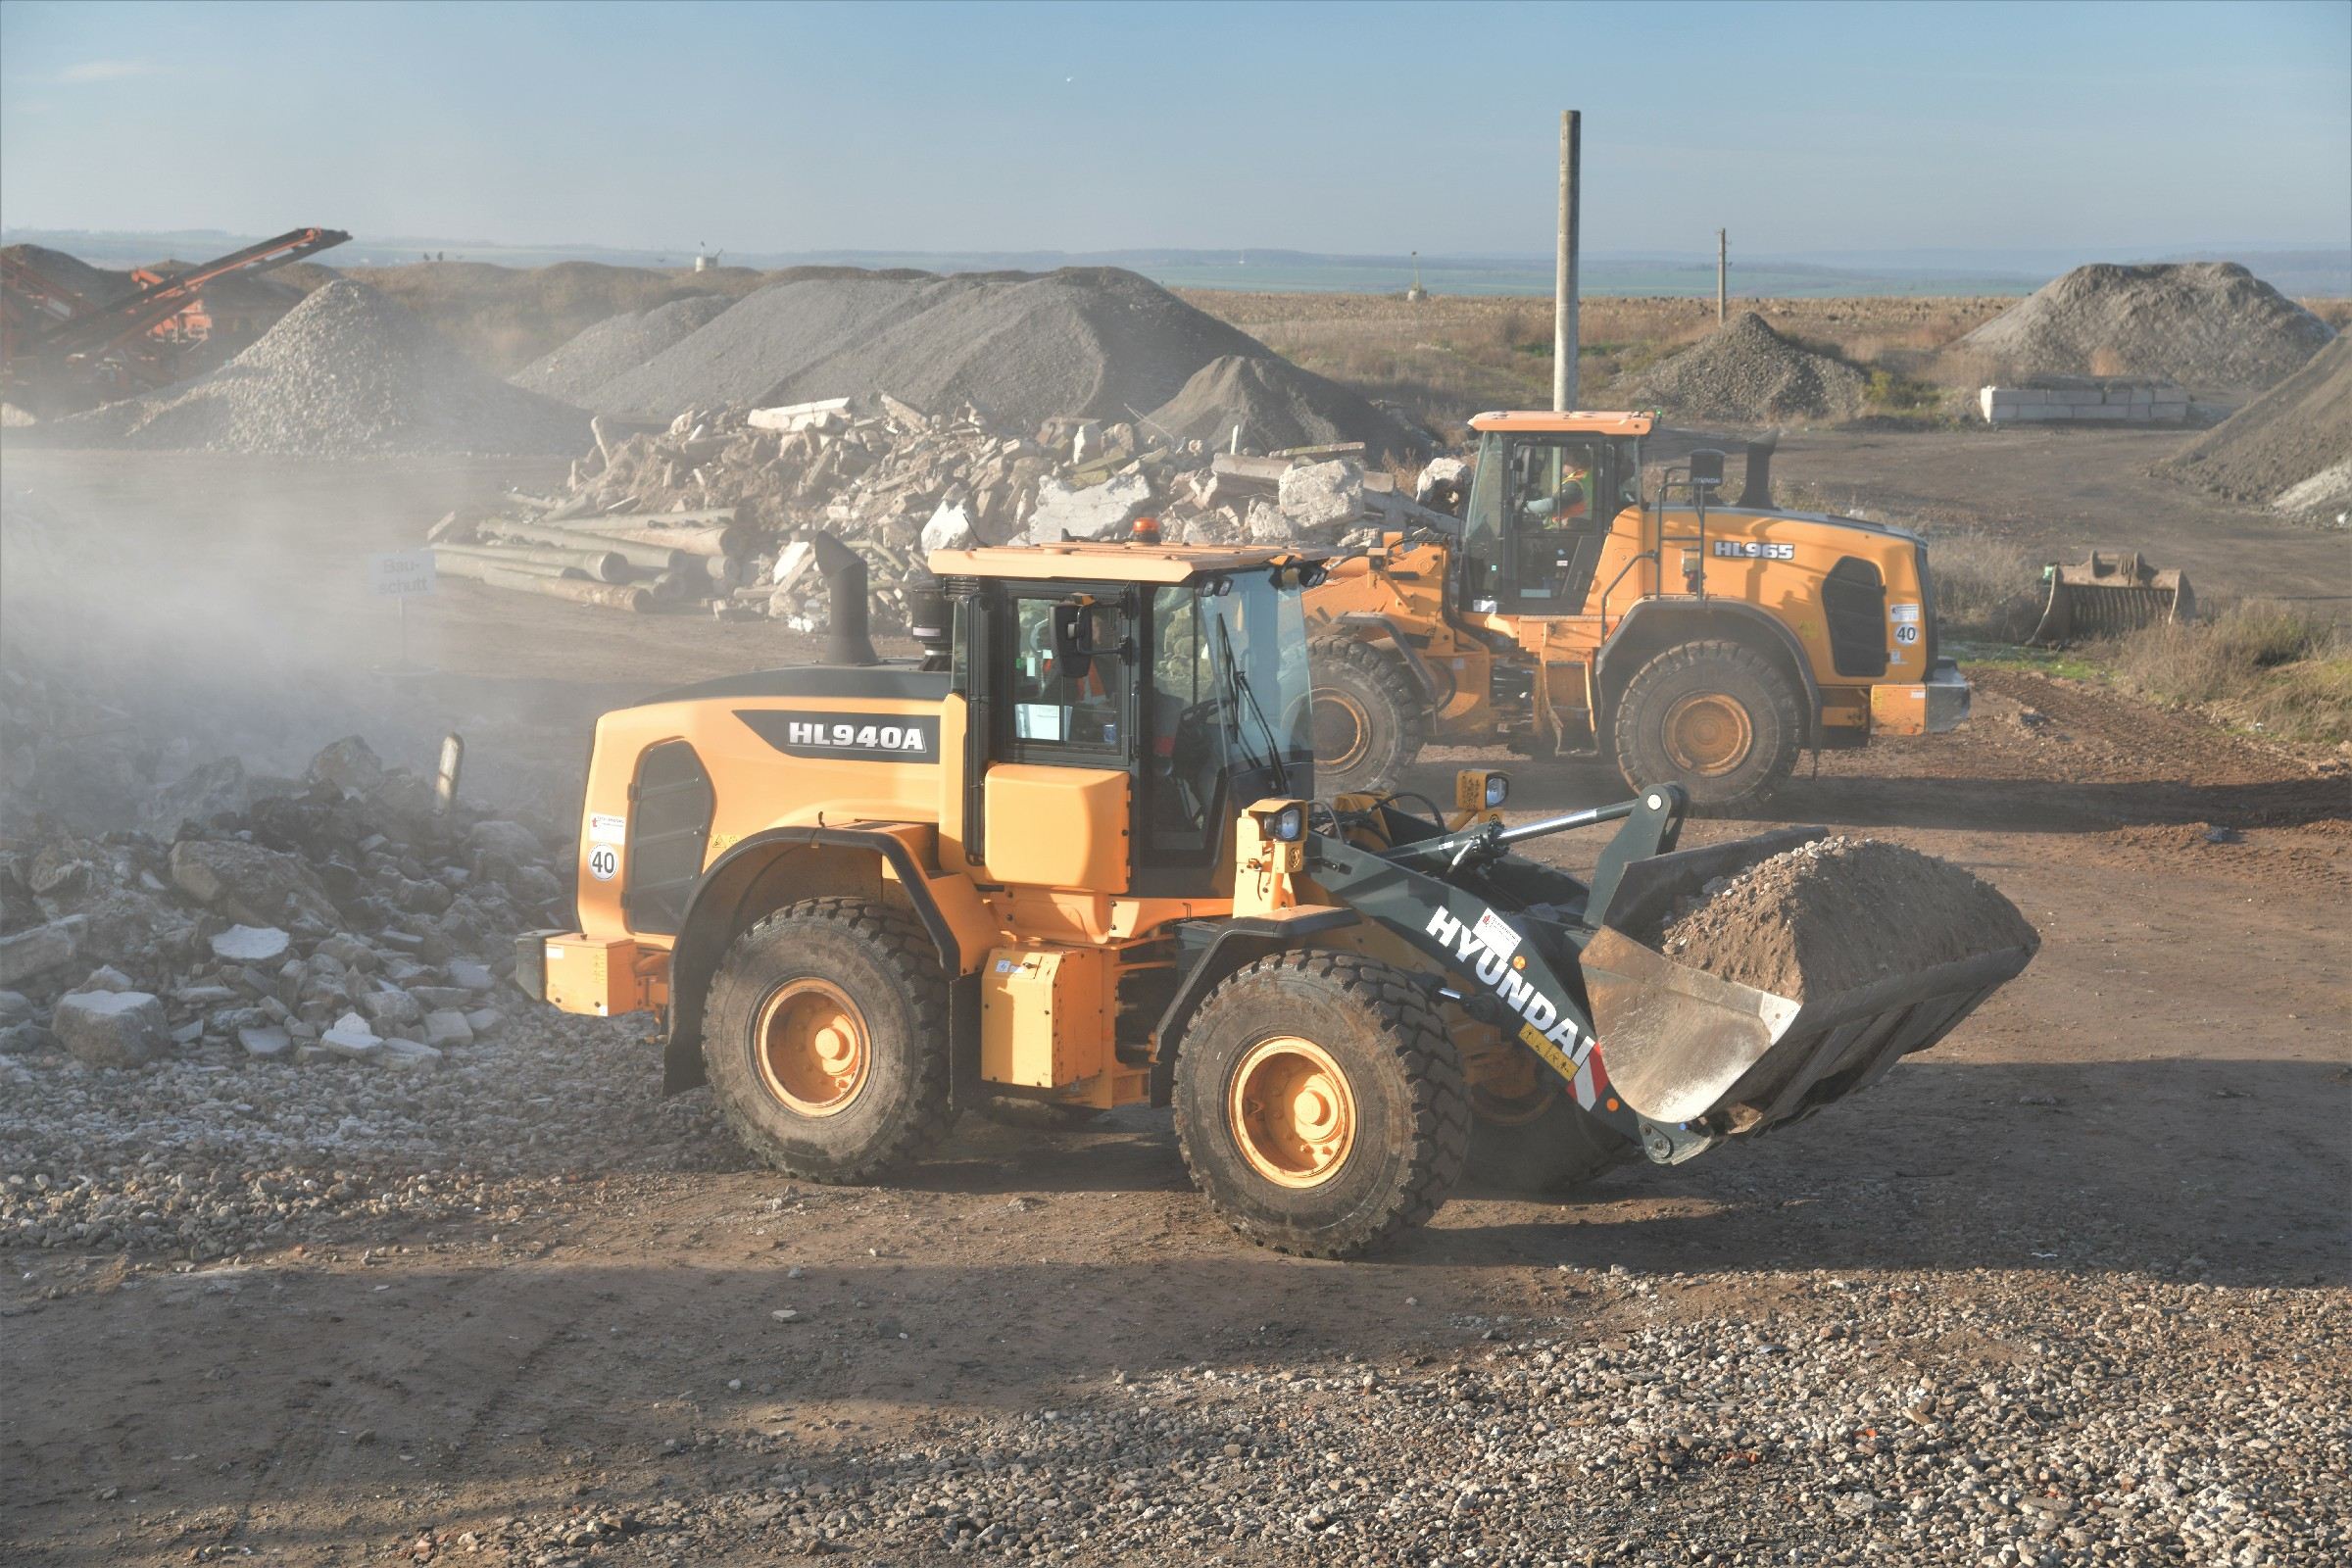 With its 2.5-m3 bucket and a reach dumping height of 2.765 mm, this loader is capable of loading even large quantities of recyclable materials.